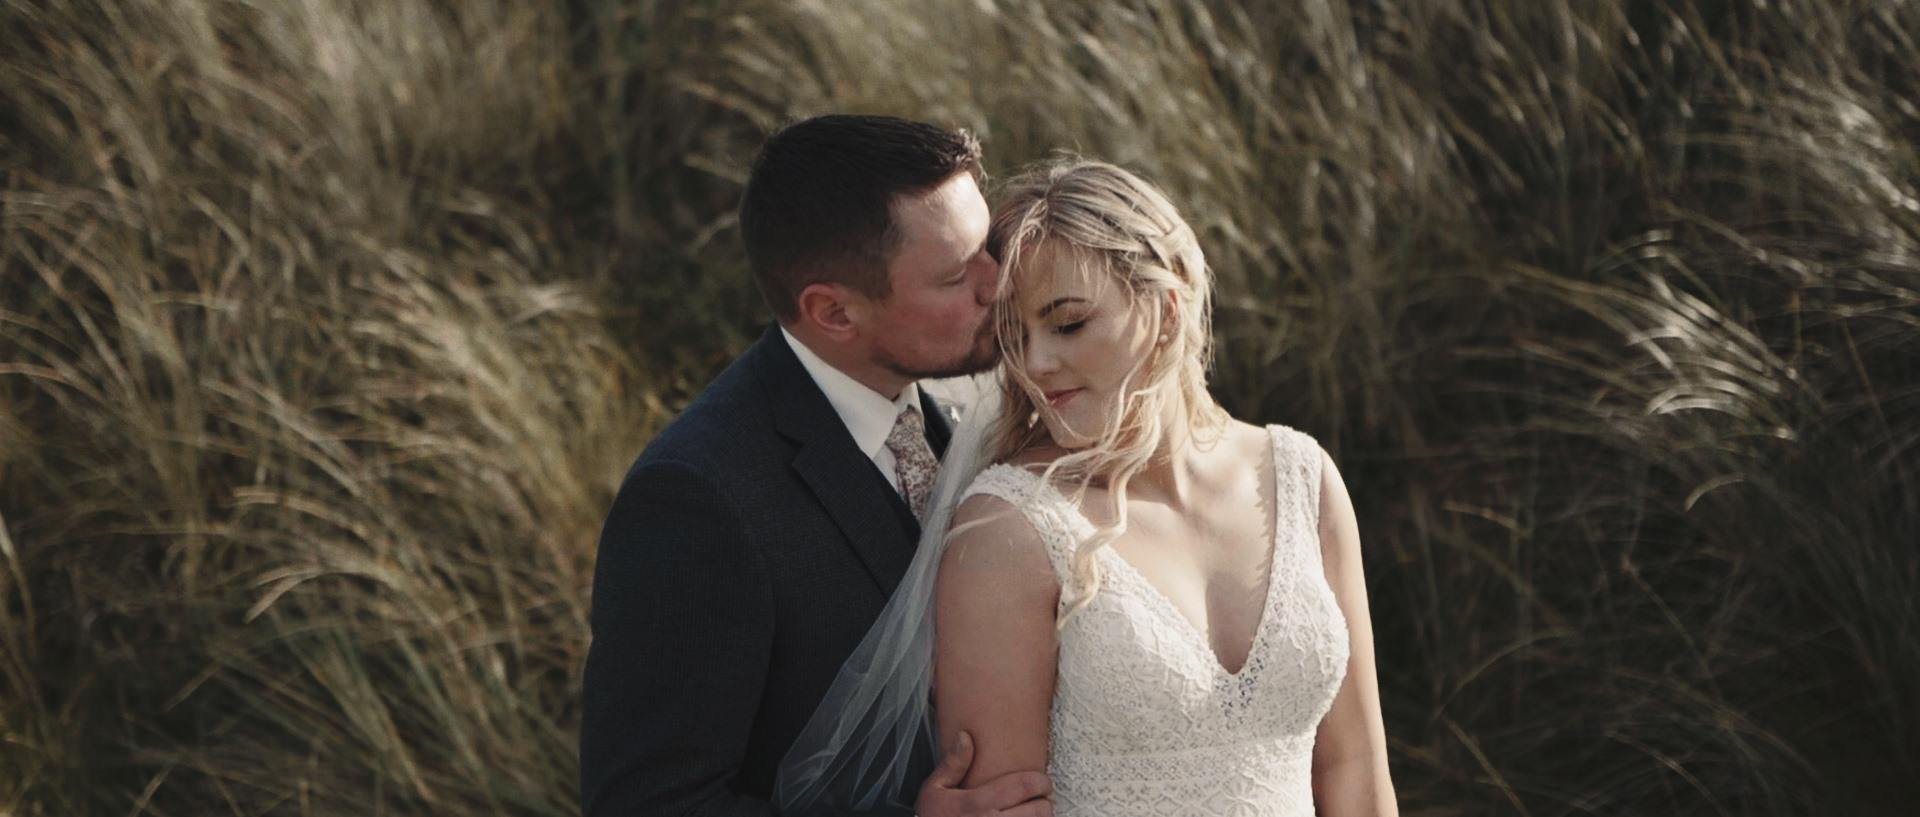 Wedding Cinematography Ireland